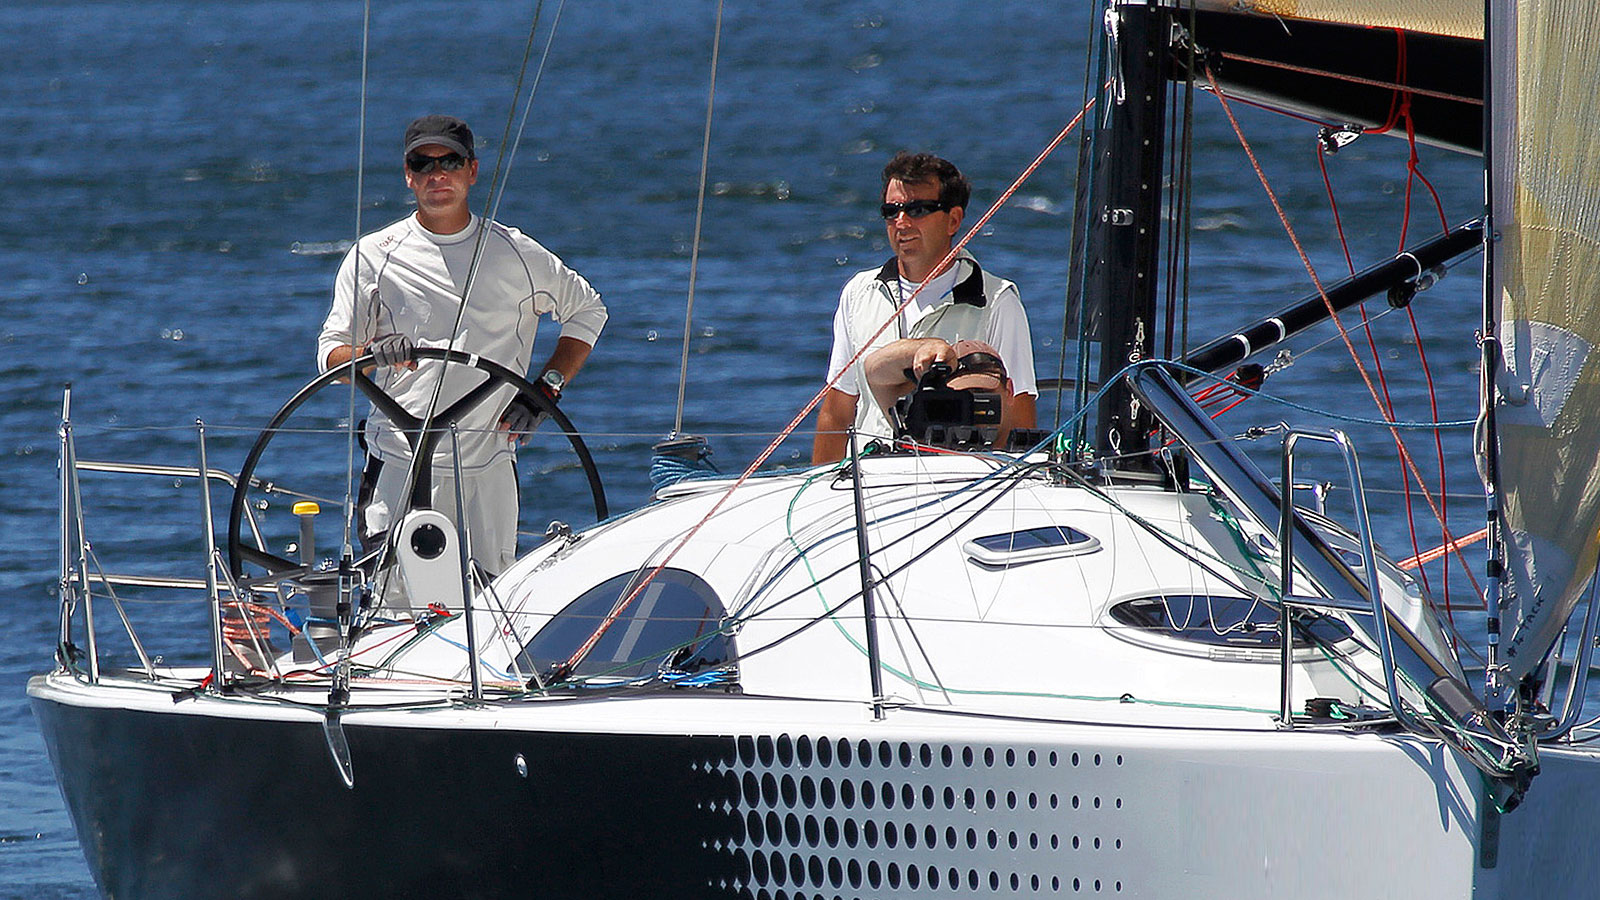 Philippe Paturel et Sylvain Barrielle, co skippers du CLASS40 Saint-Pierre et Miquelon